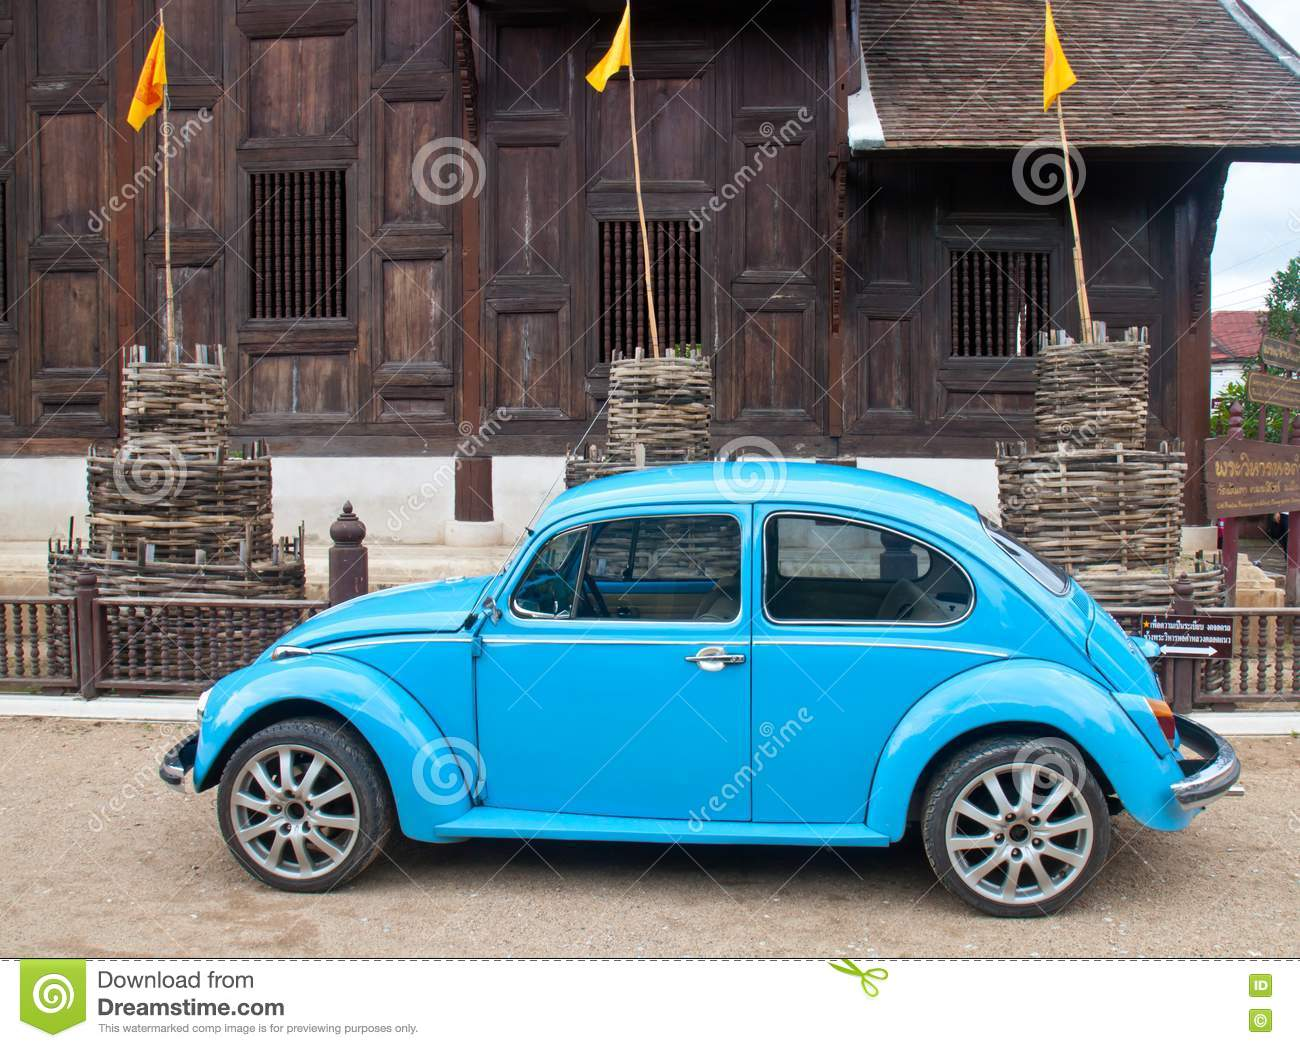 old car and temple royalty free stock photography image 20234507. Black Bedroom Furniture Sets. Home Design Ideas